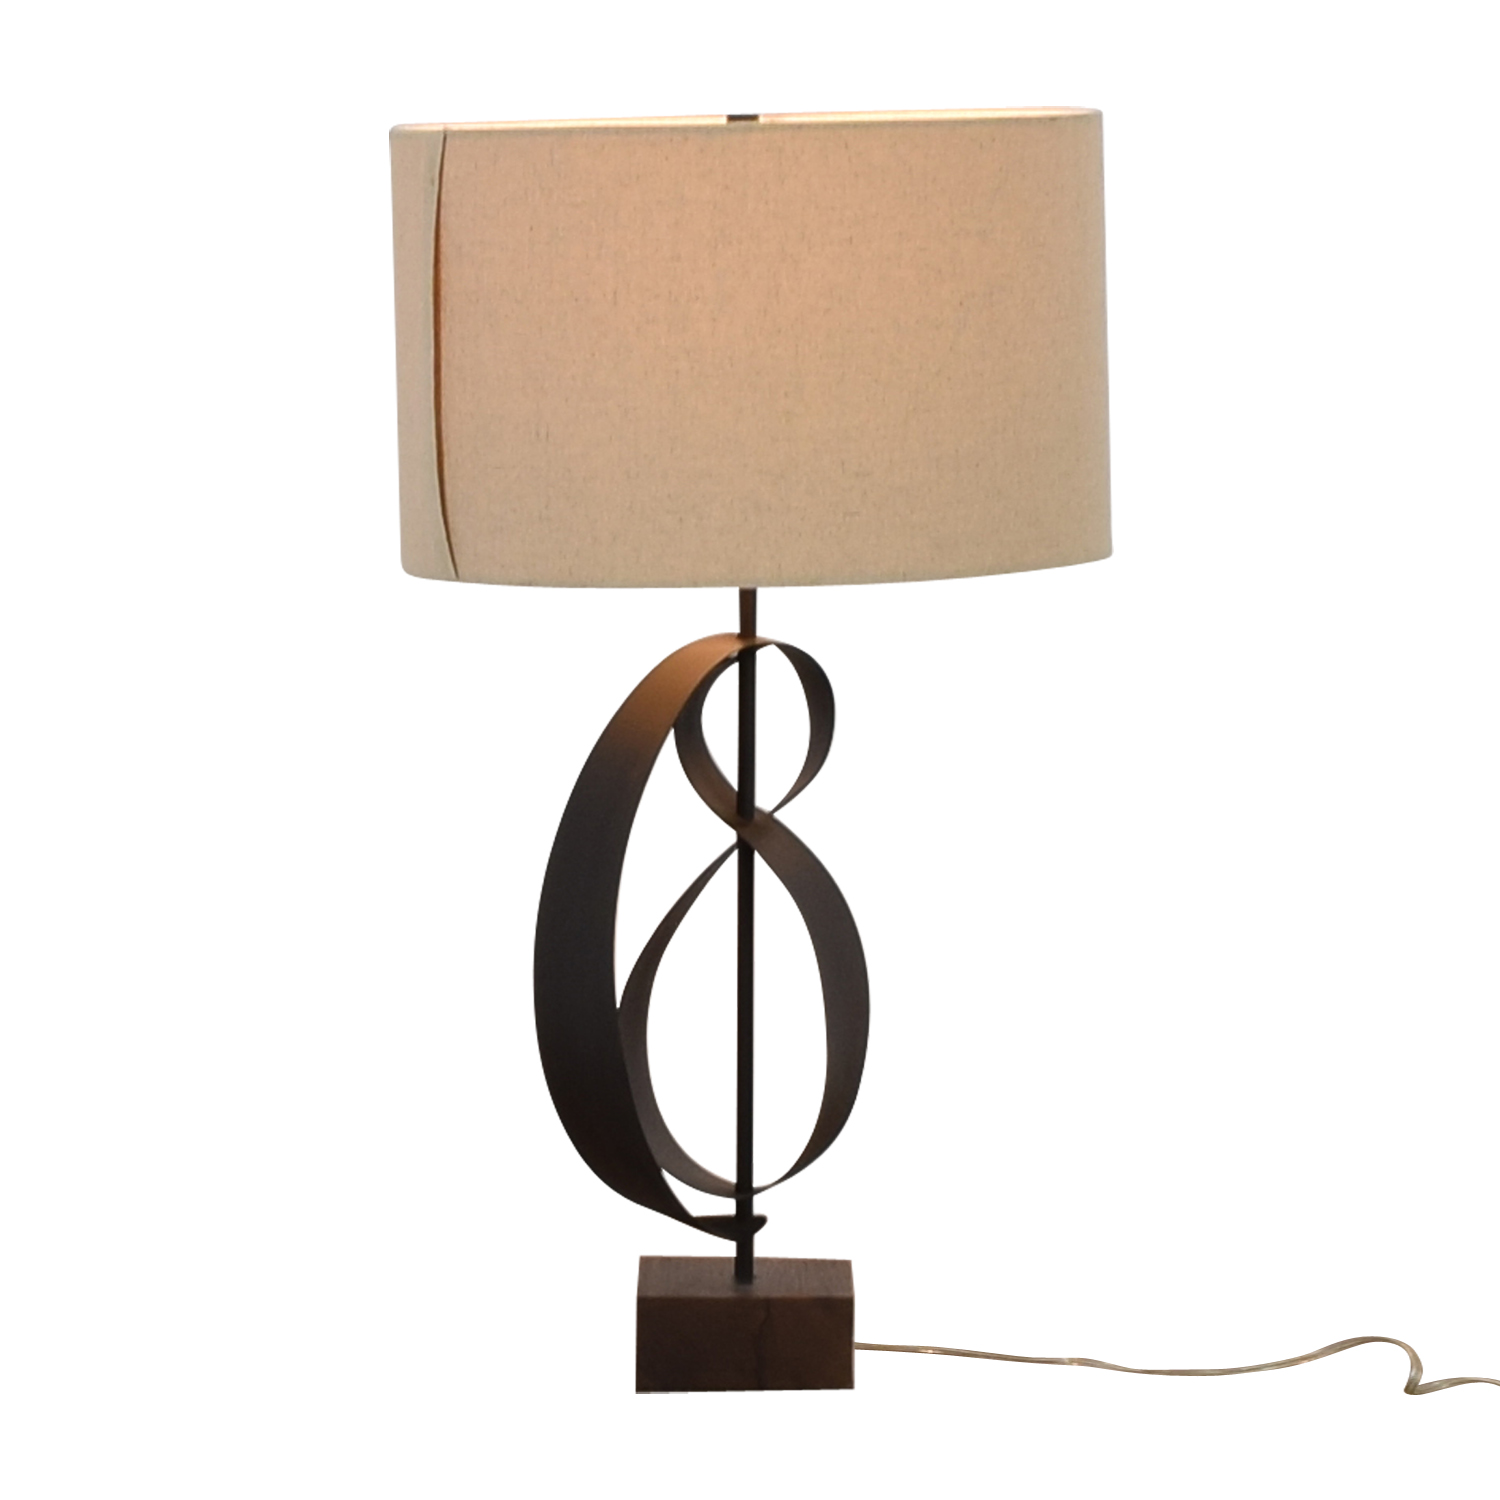 73 Off West Elm West Elm Curved Table Lamp Decor